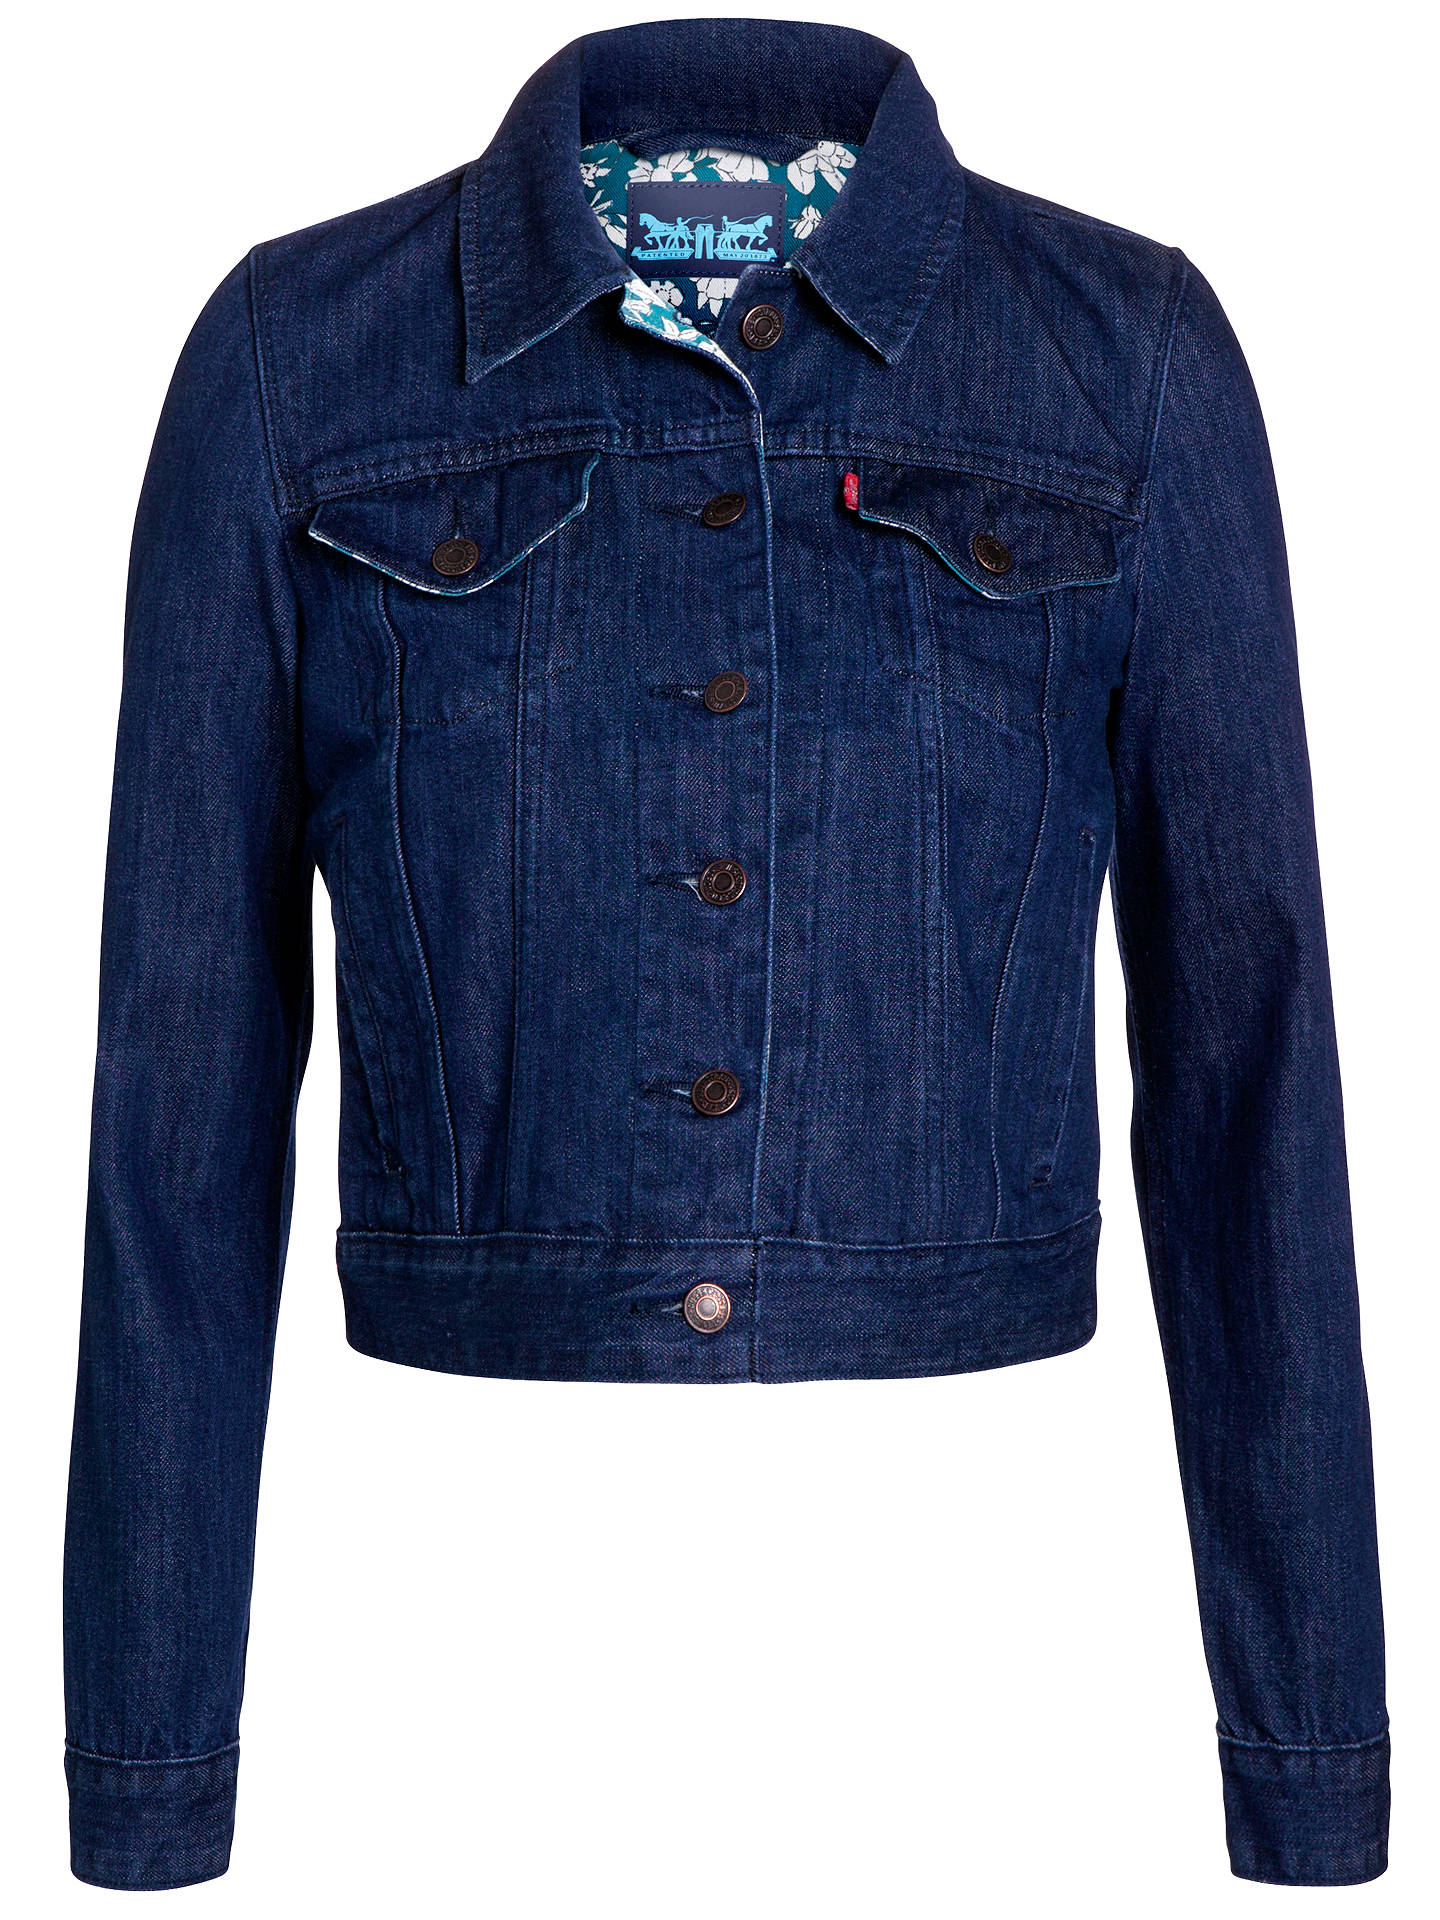 Buy Levi's Authentic Trucker Jacket, Blue, S Online at johnlewis.com